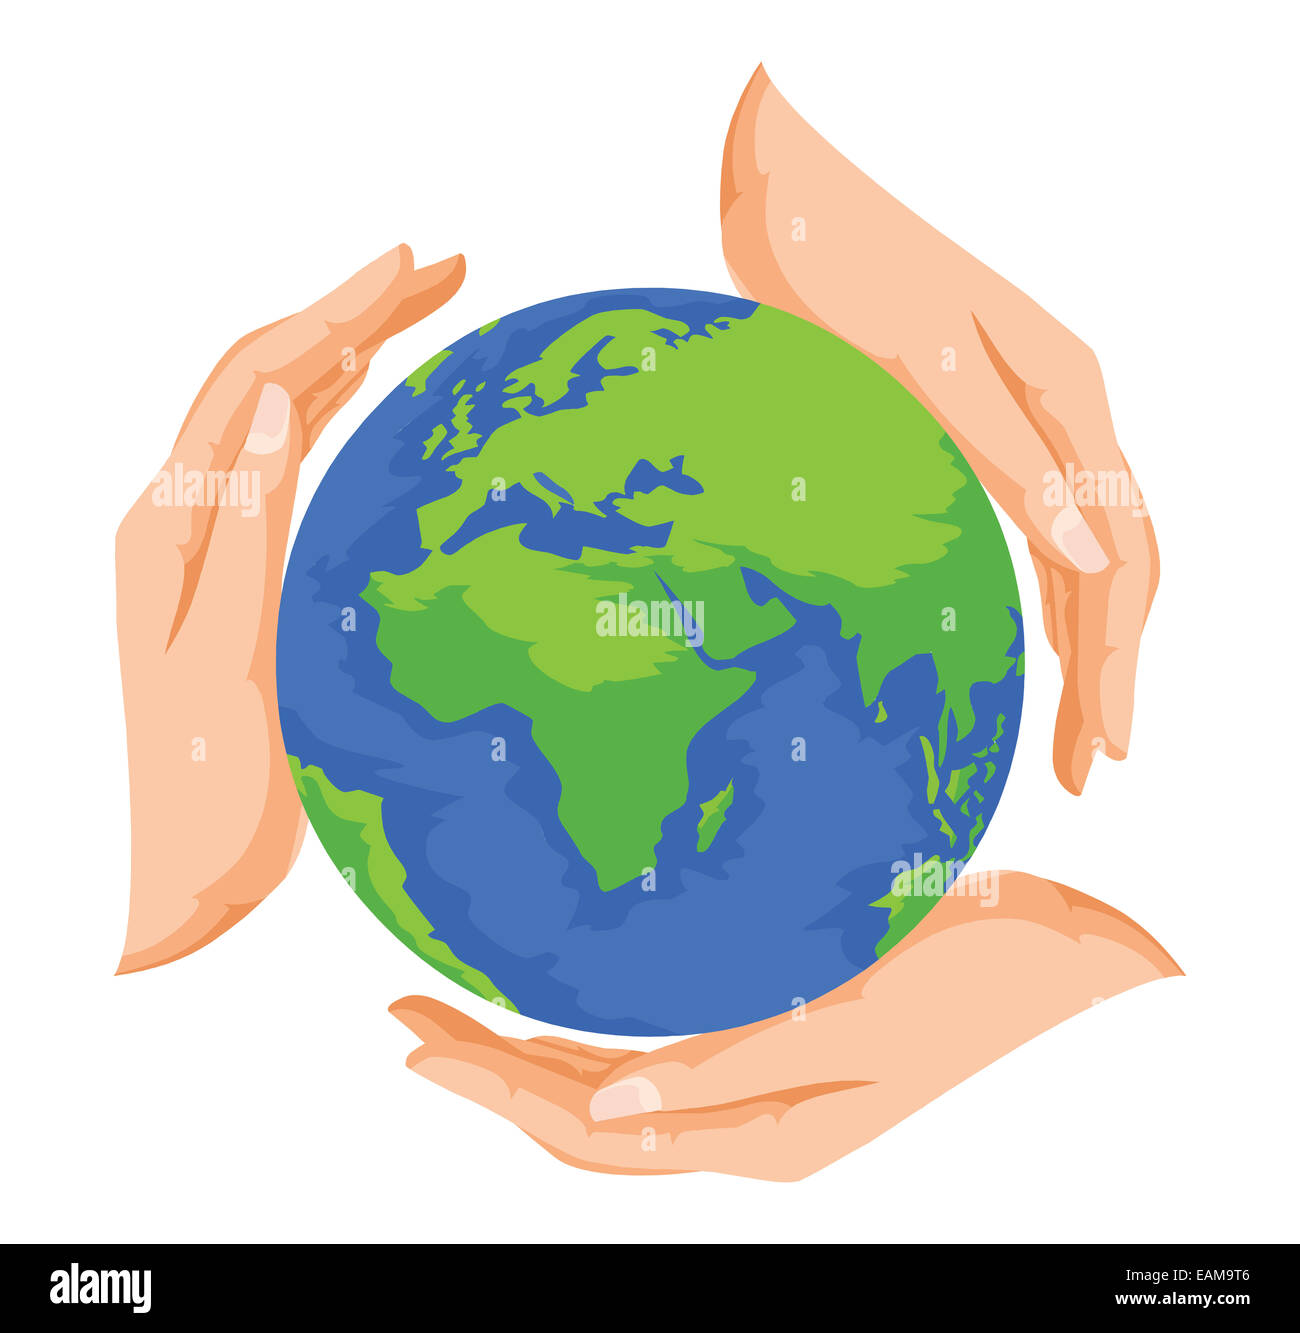 save the earth images  Saving Earth Cut Out Stock Images